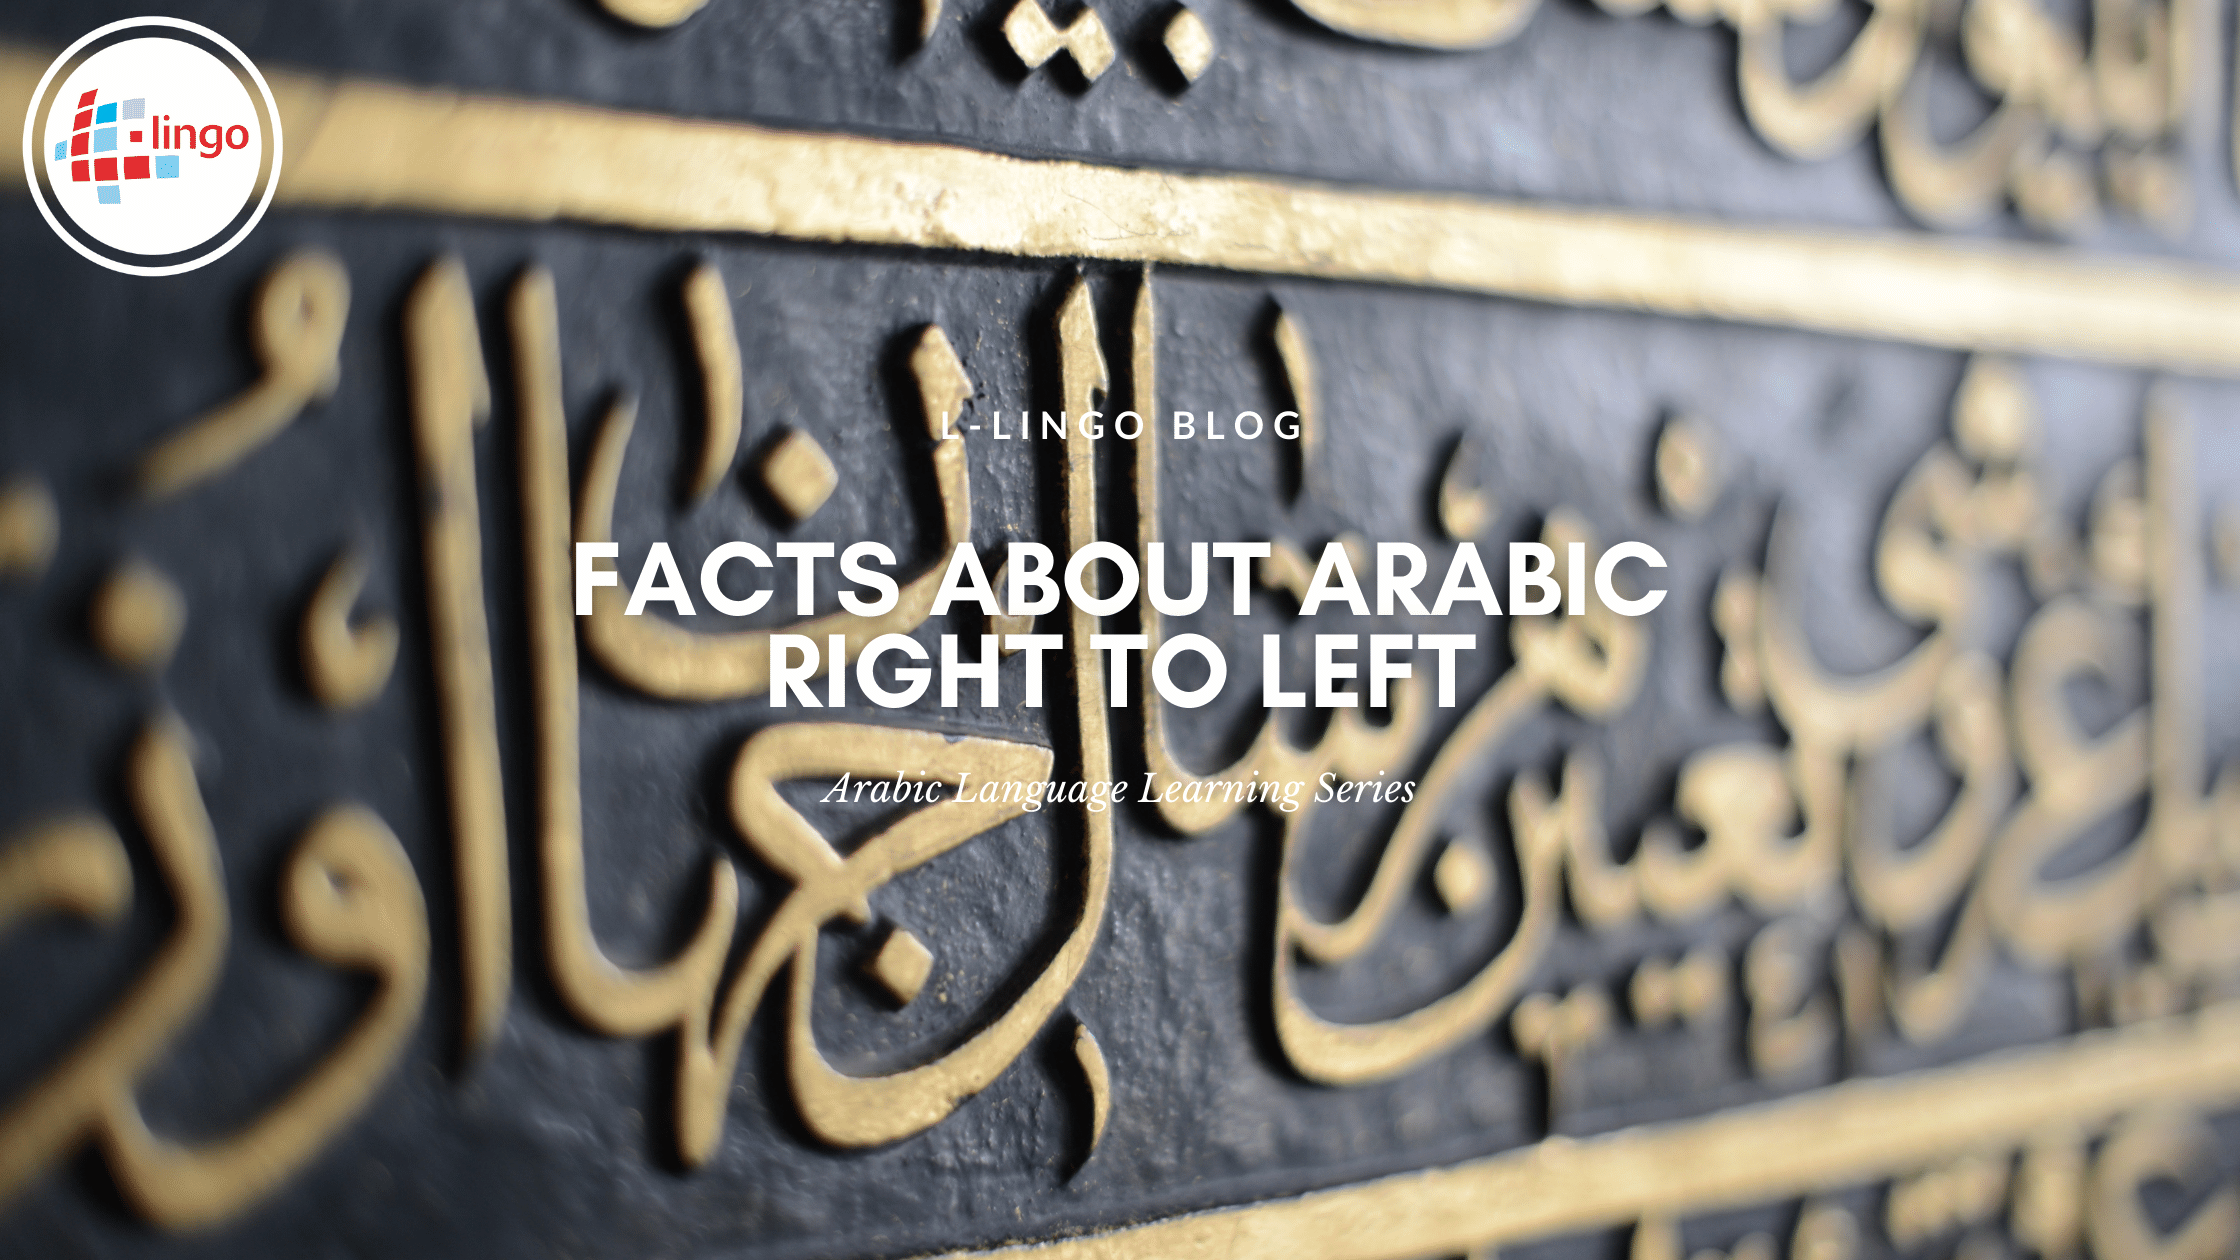 L-LINGO BLOG Facts About Arabic Right To Left